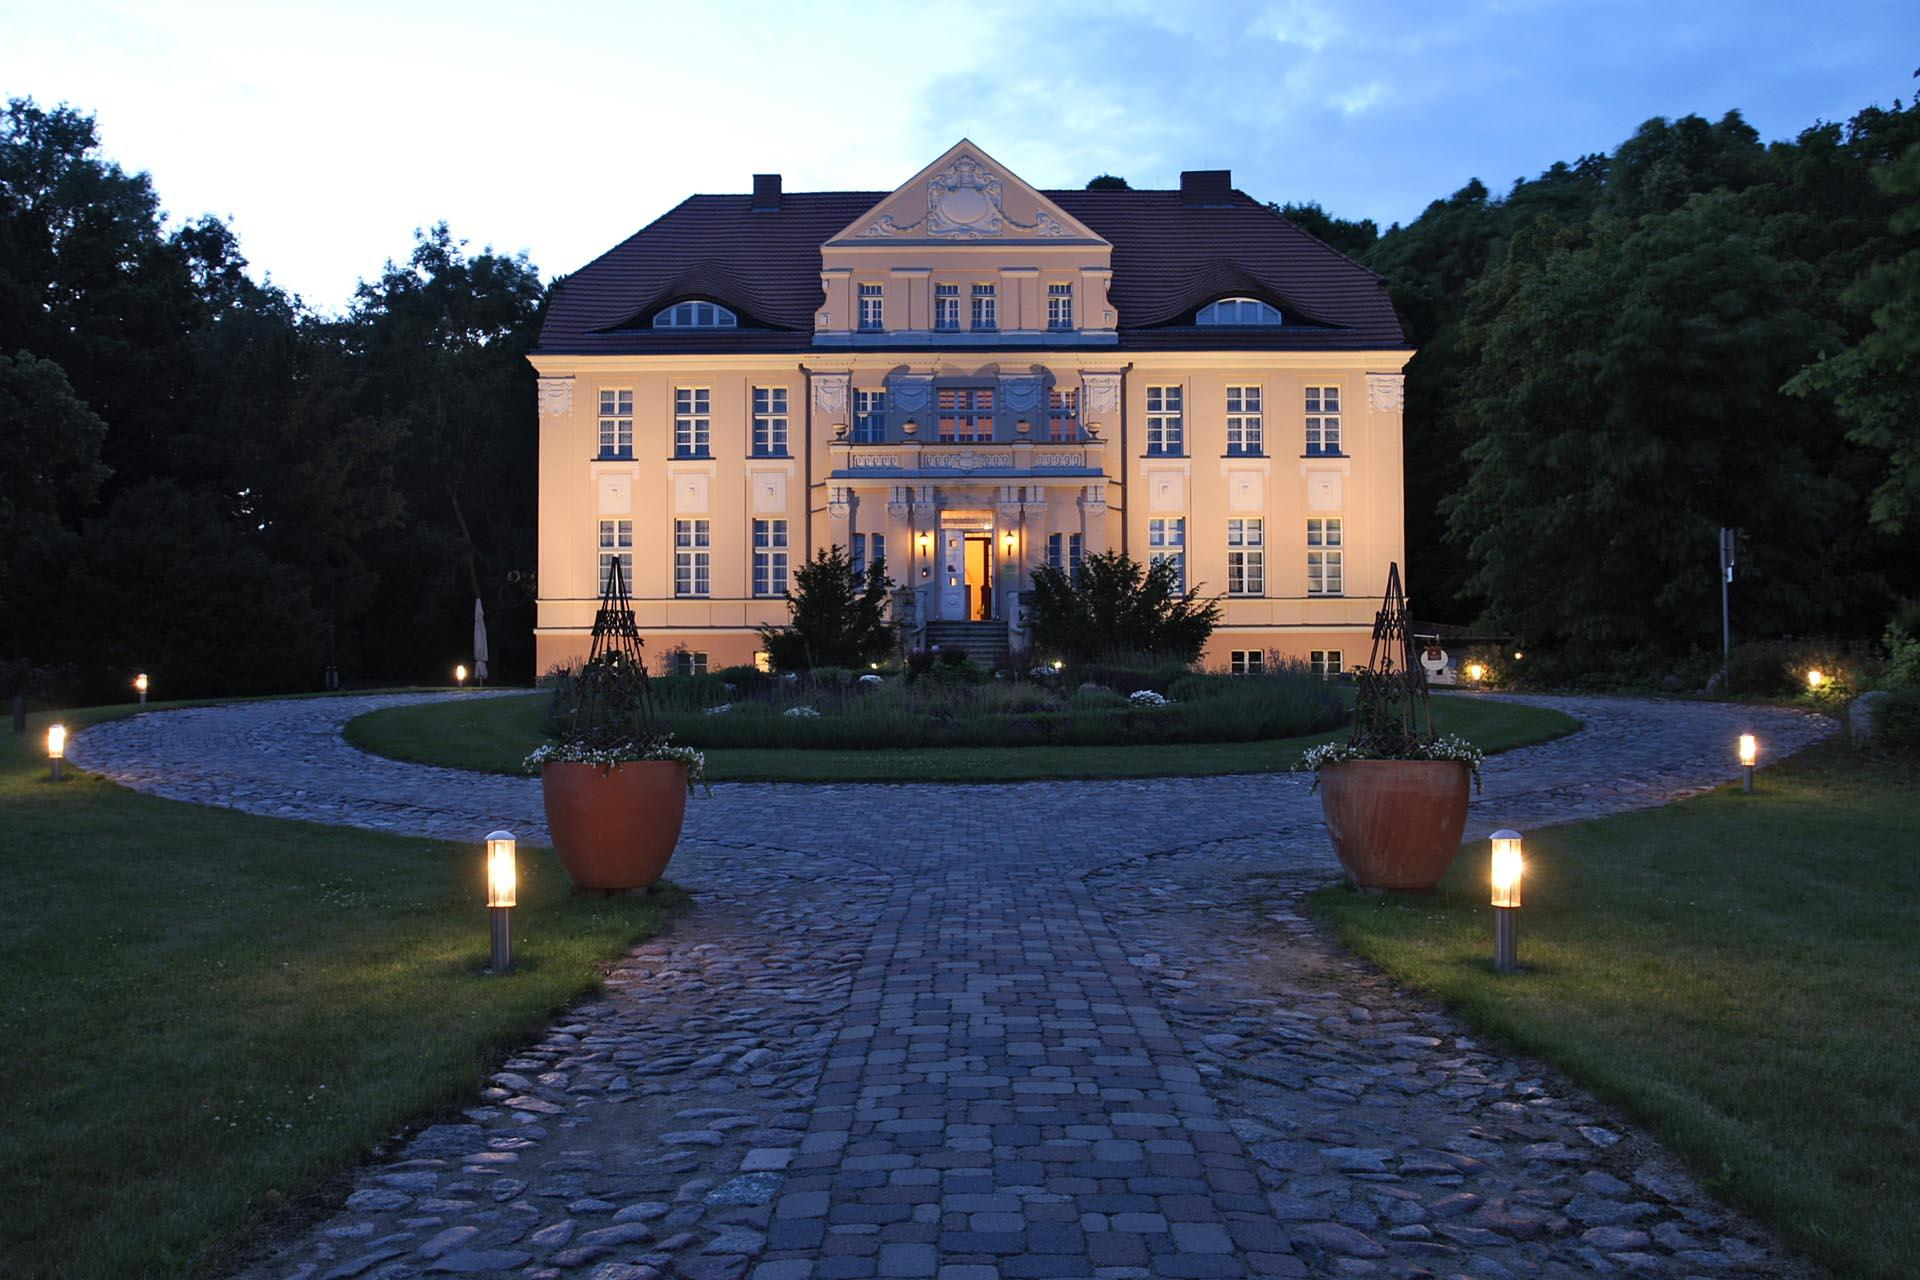 building and garden of Precise Resort Rügen